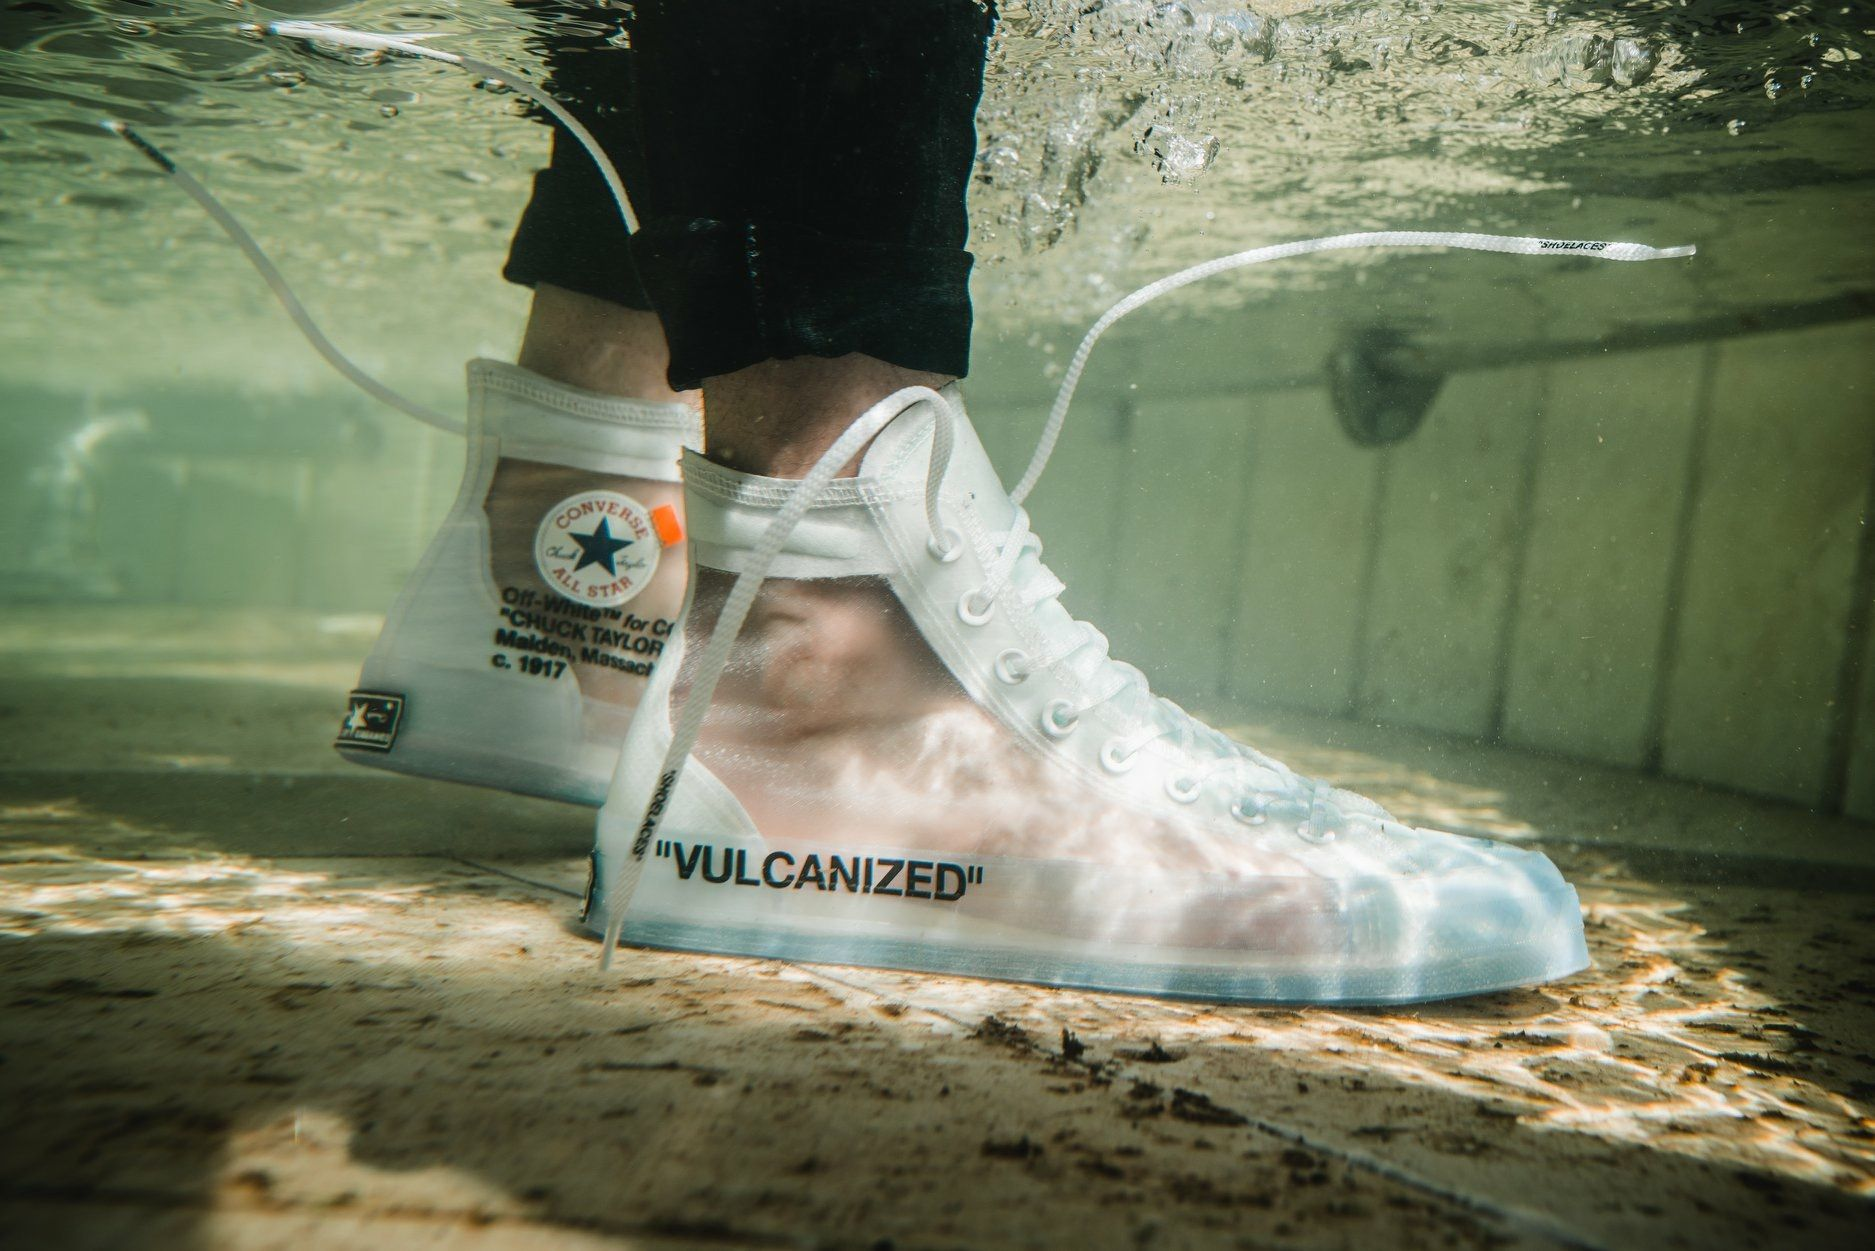 Off White X Converse All Star Off White Converse Converse Chuck Taylor Chuck Taylors